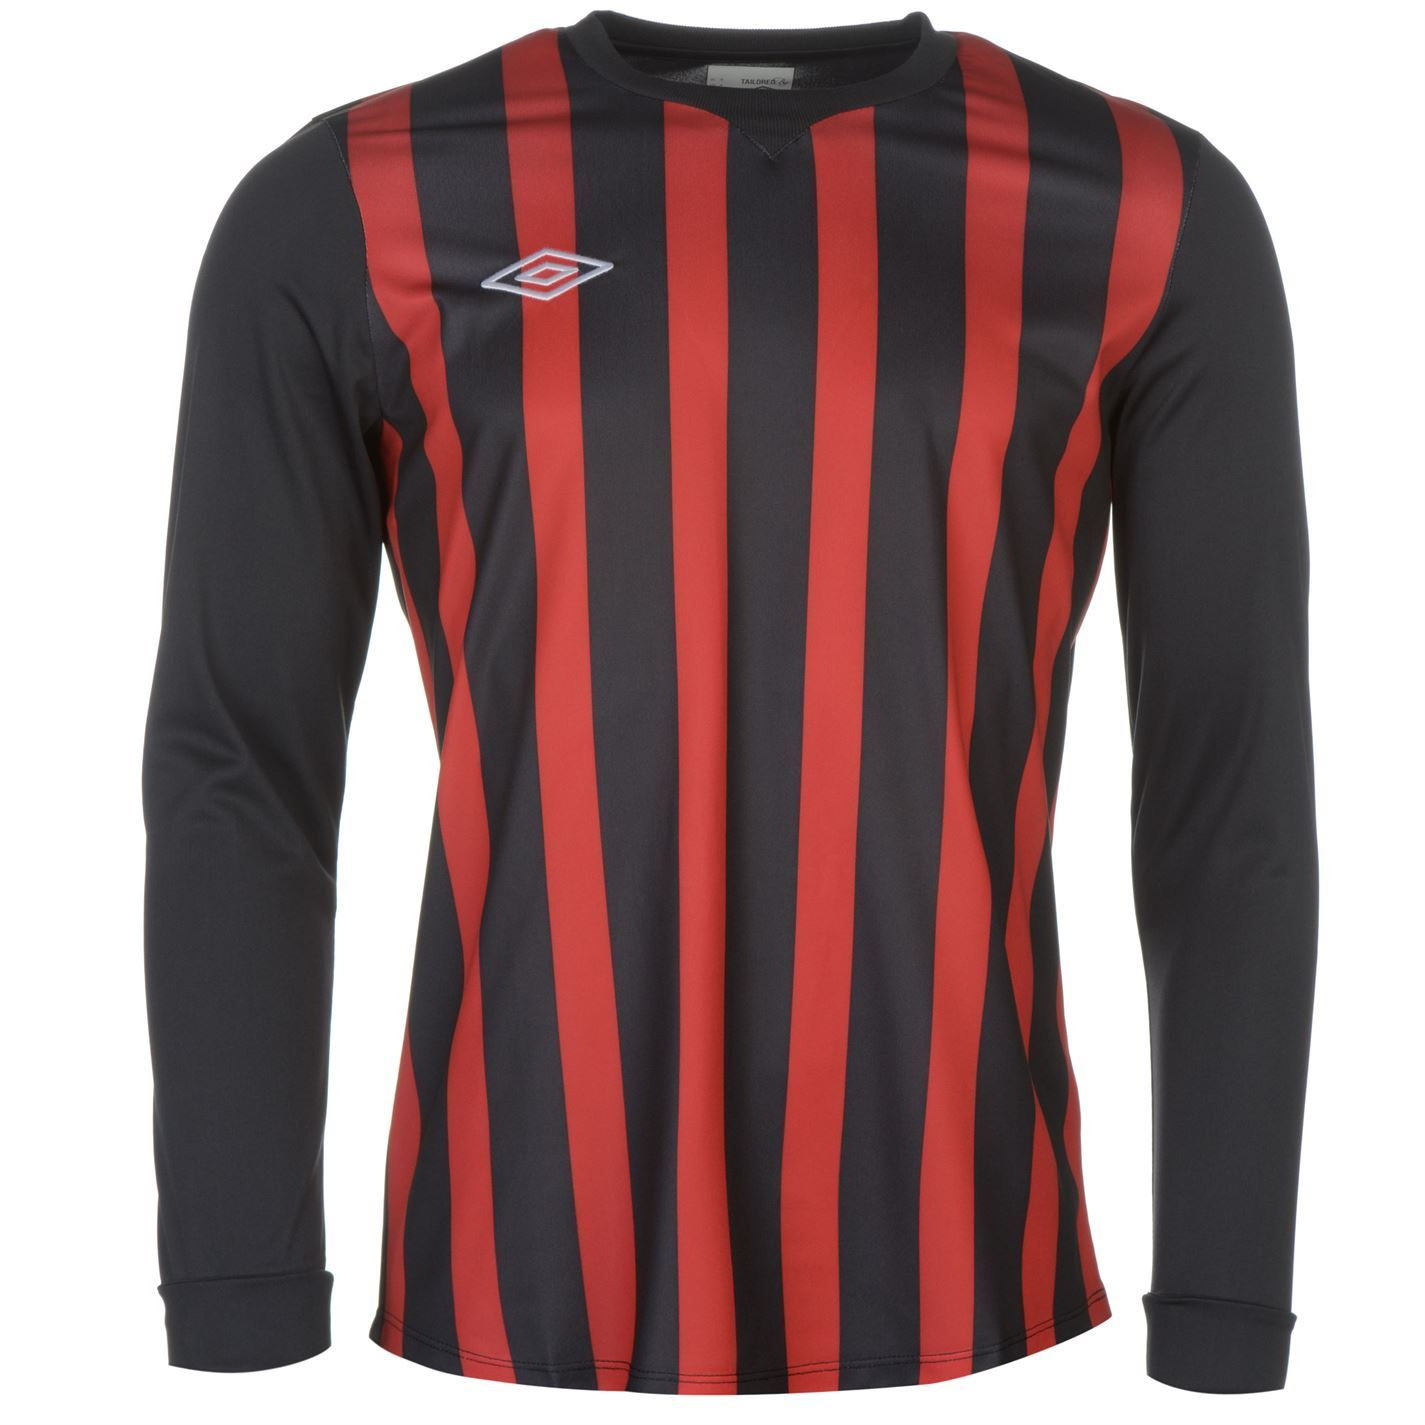 Image is loading Umbro-Mens-Striped-Long-Sleeve-Jersey -Lightweight-Performance- 9a40b9f6a